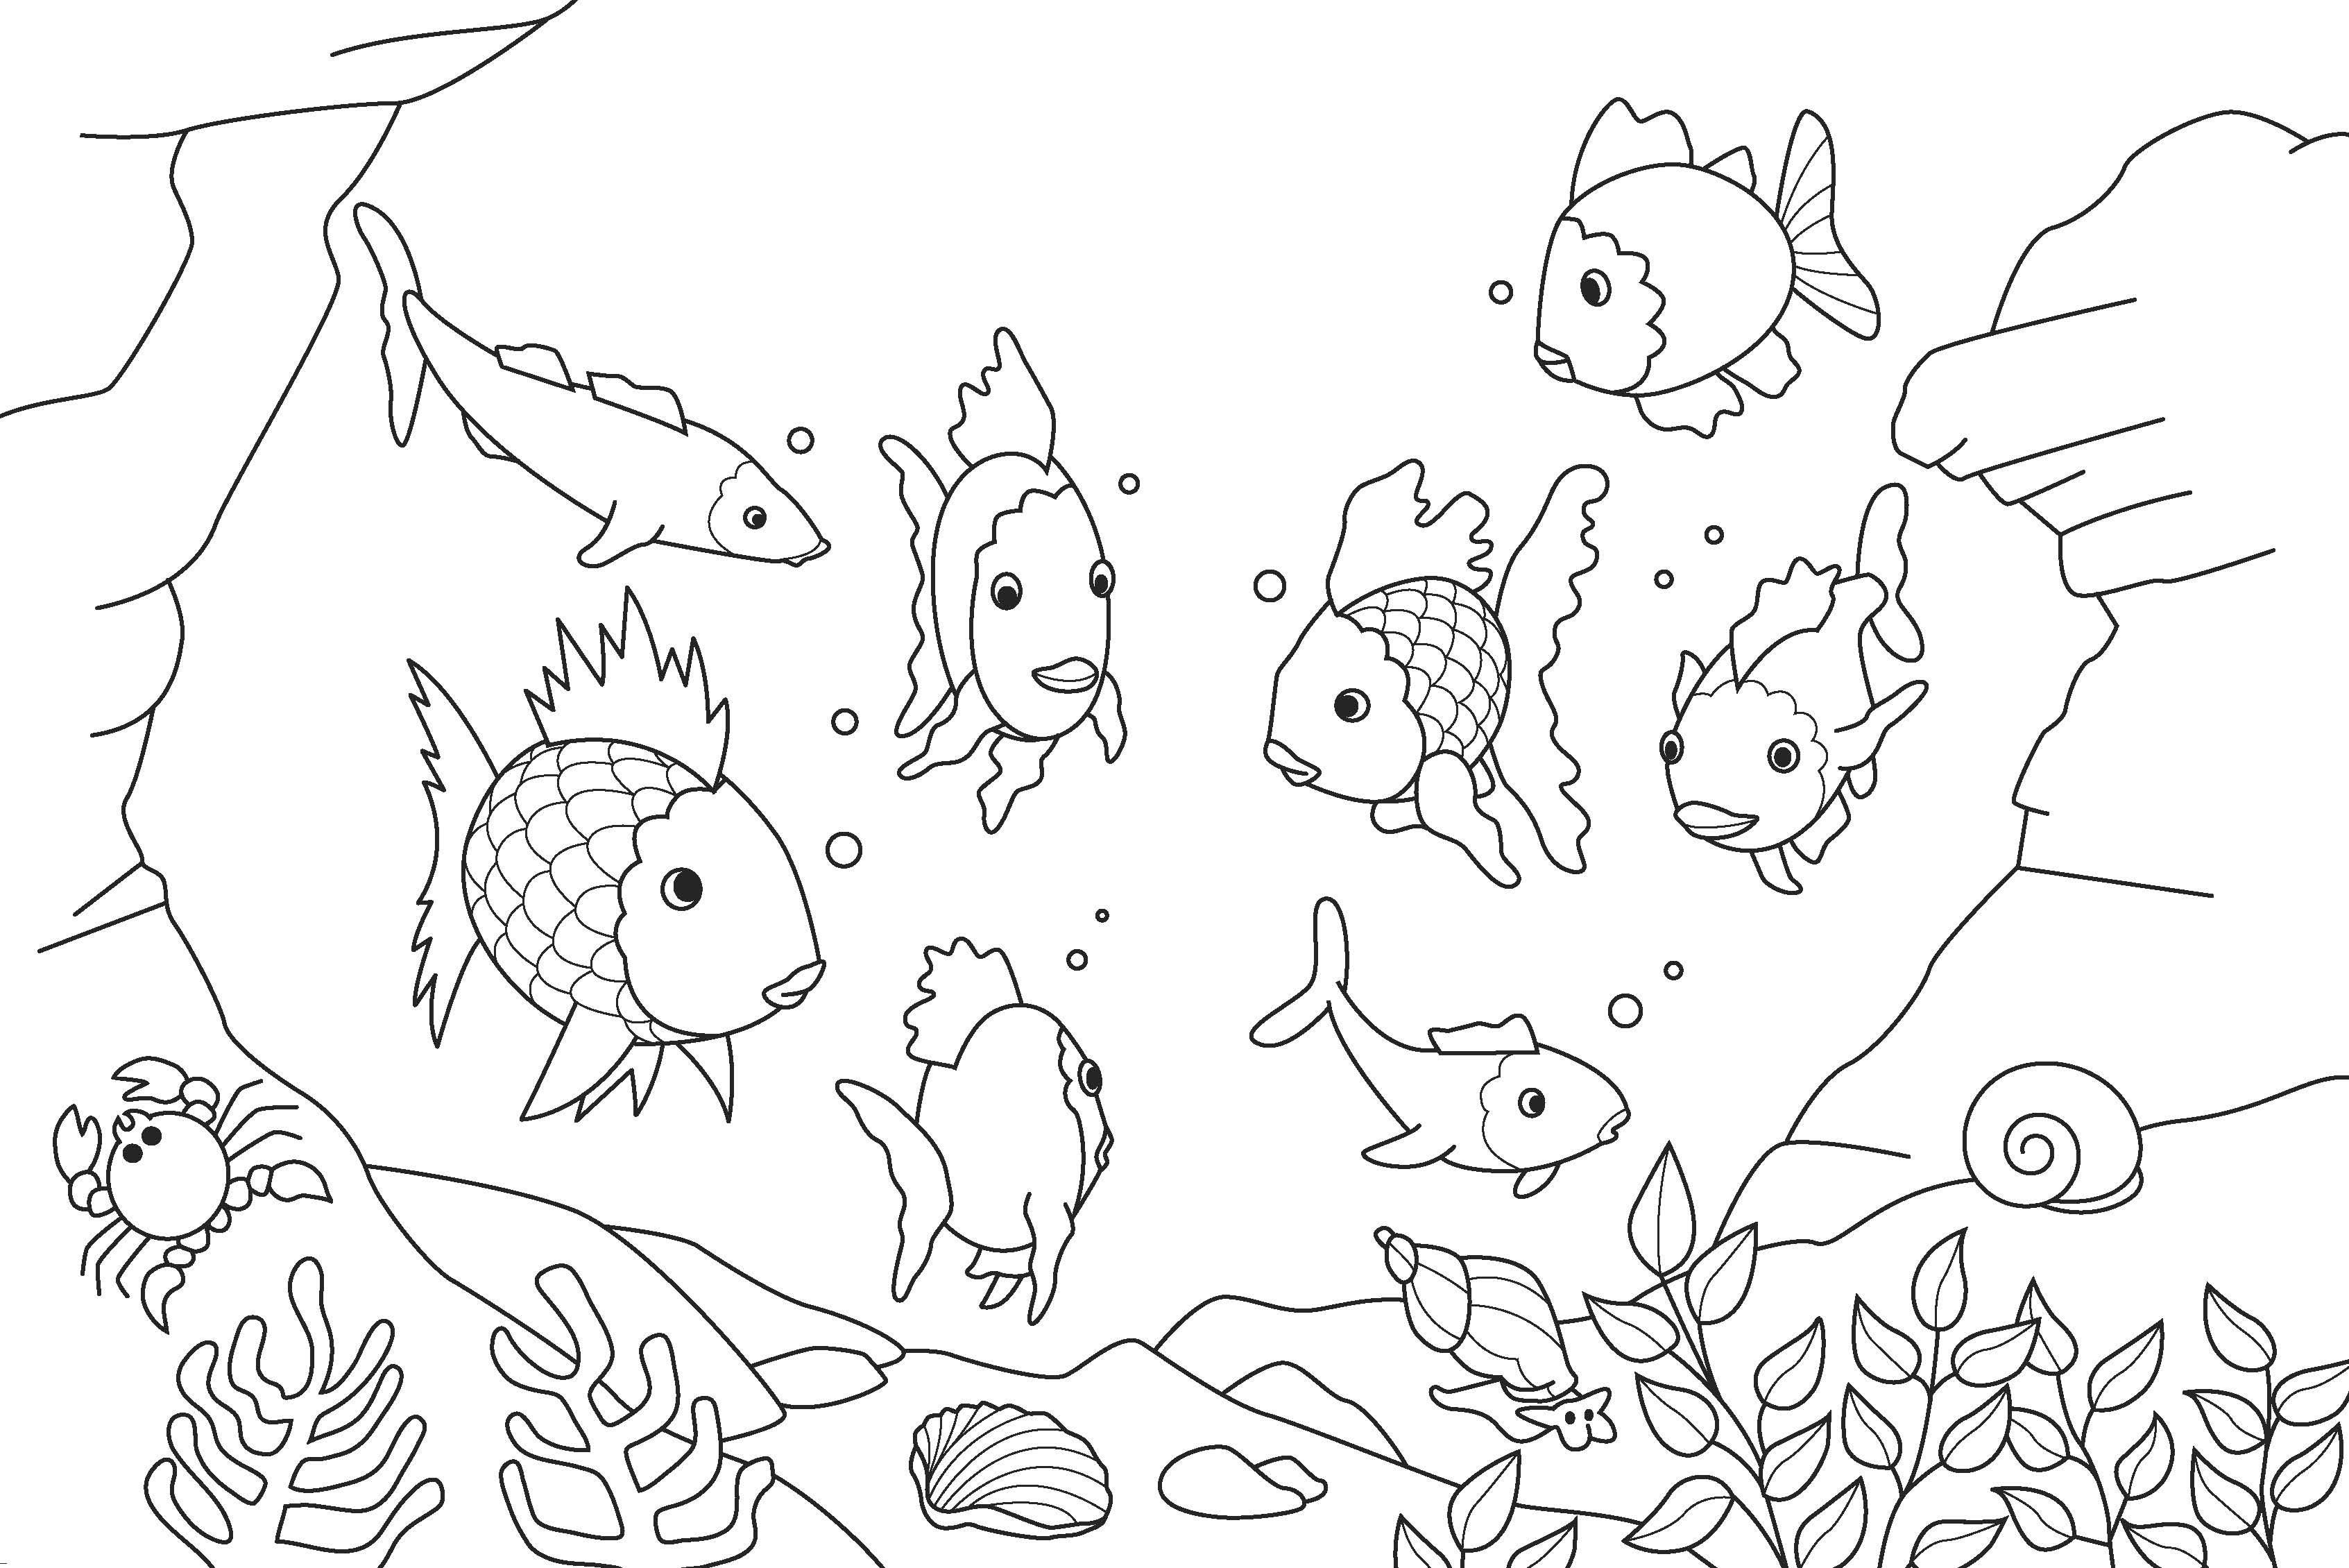 fish coloring pages free - photo#3